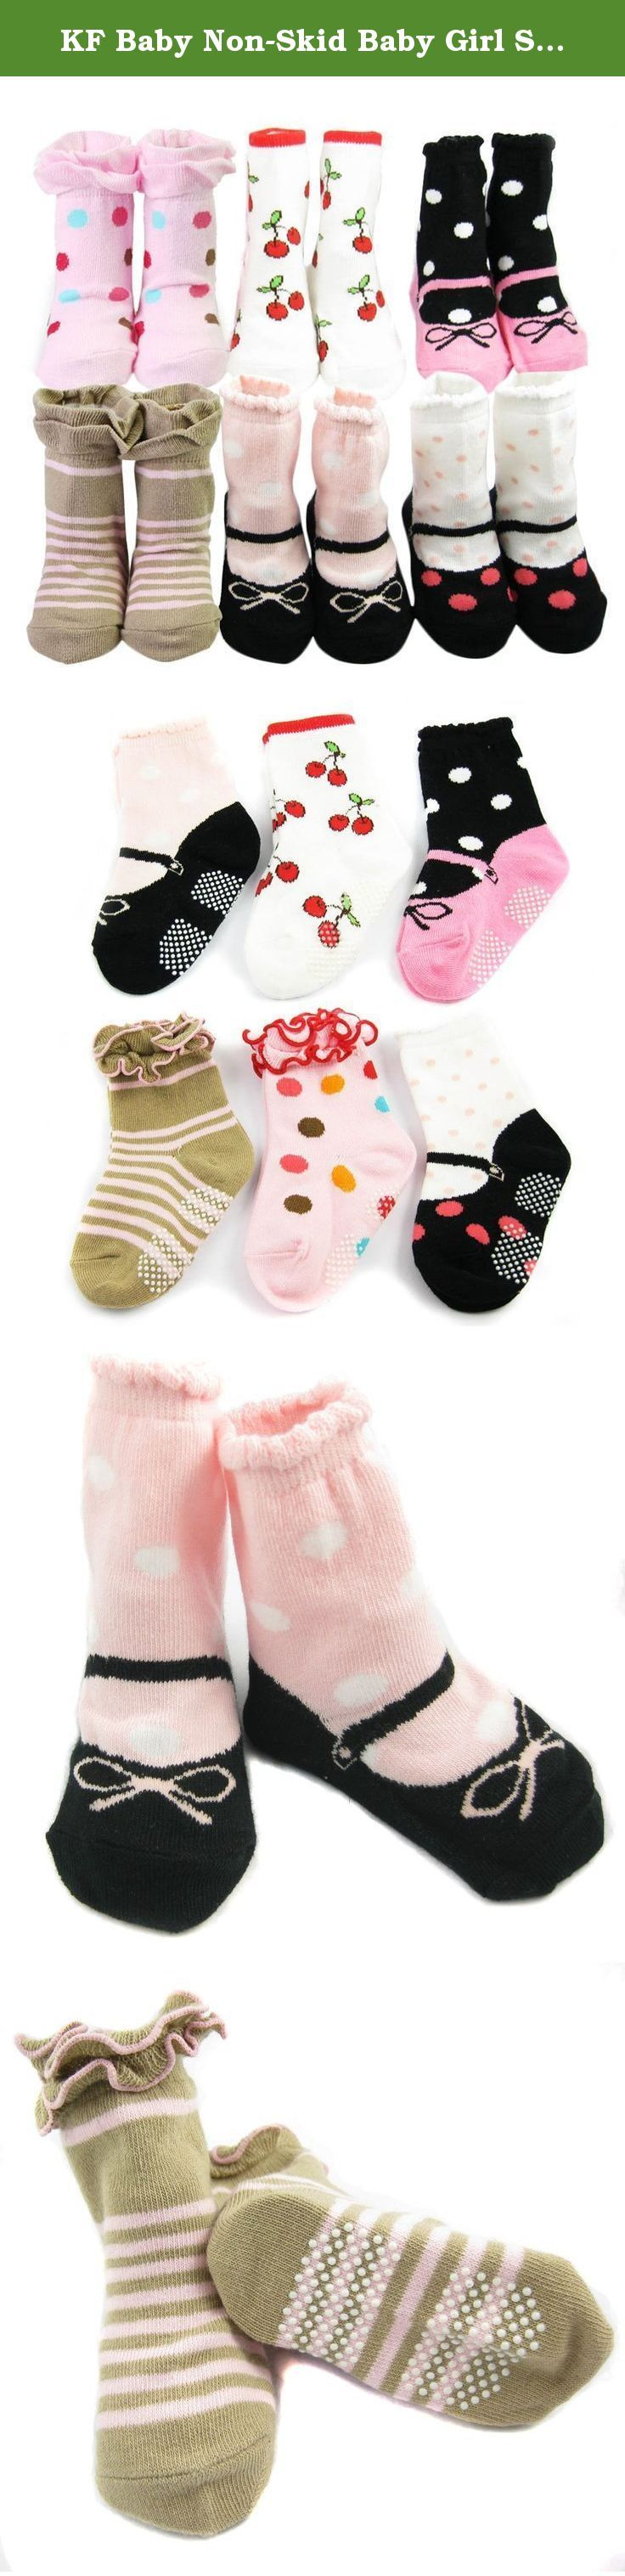 KF Baby Non-Skid Baby Girl Socks, 6 pairs, Infants to Toddlers. KF Baby Non-Skid Baby Girl Socks is an ideal gift for a new arrival in the family. These 6 pairs of non-skid socks are made of cotton-rich fabric that is soft and comfortable on the little feet of your baby. They are all in fun, bright colors with adorable shoes design and non-skid soles for better traction. The socks come with a KF Baby To/From gift tag. Recommended for babies between 6 - 18 months. KF Baby is a trademark...